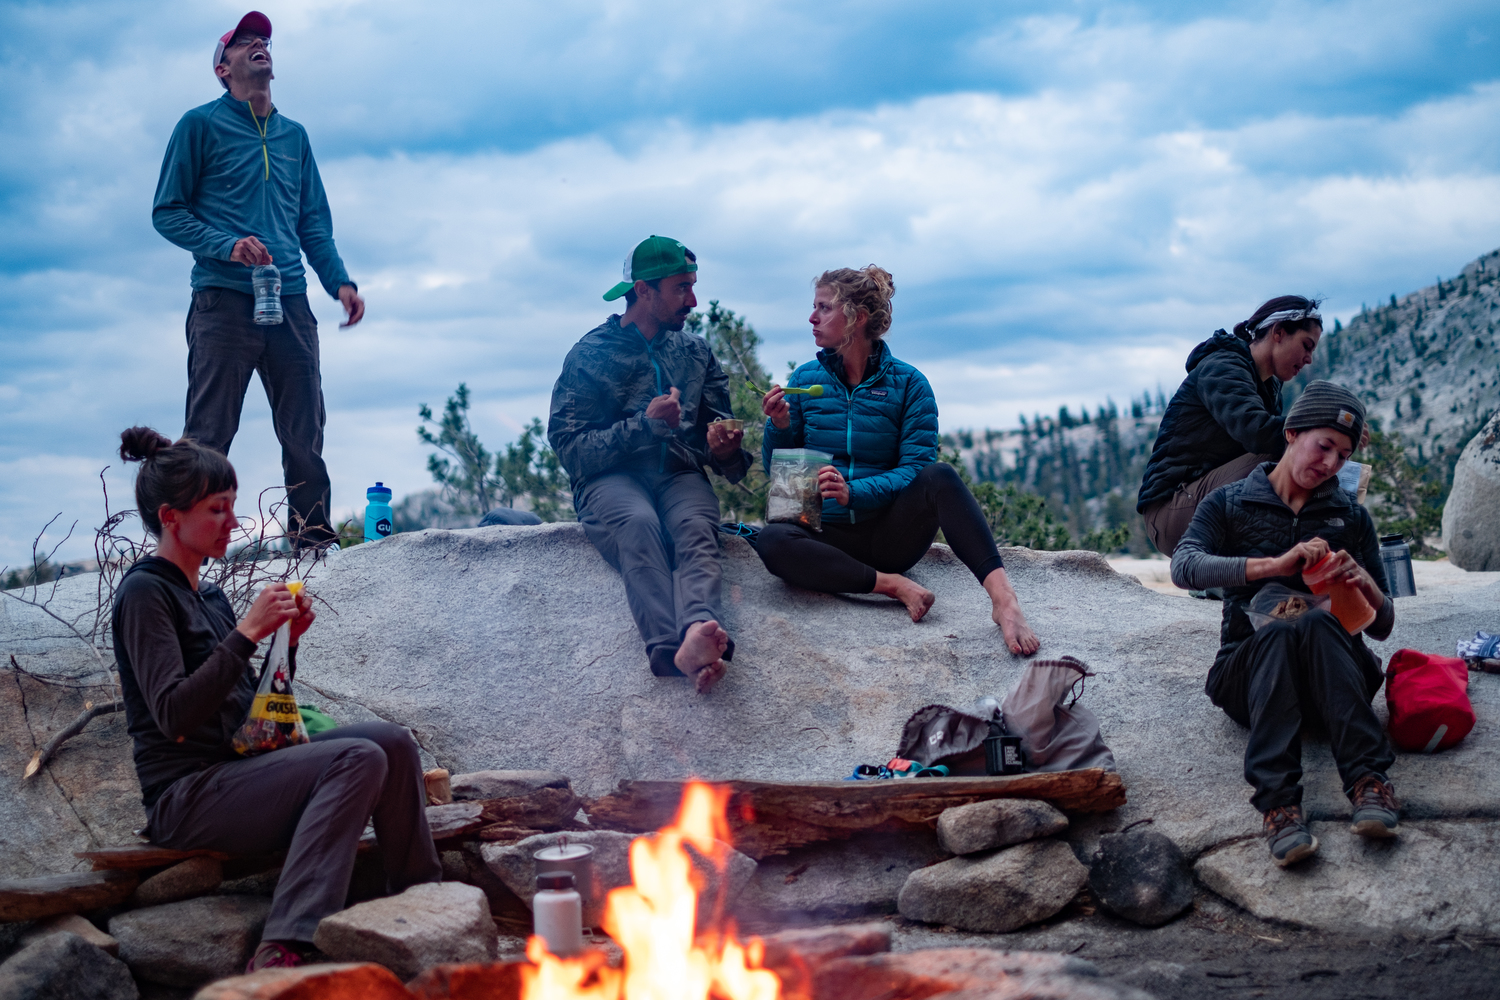 Six friends gather around a campfire with camping dinners. They are cooking meals on backpacking stoves. Five people are on a granite rock and one person sits on a log. A mountain is in the background.